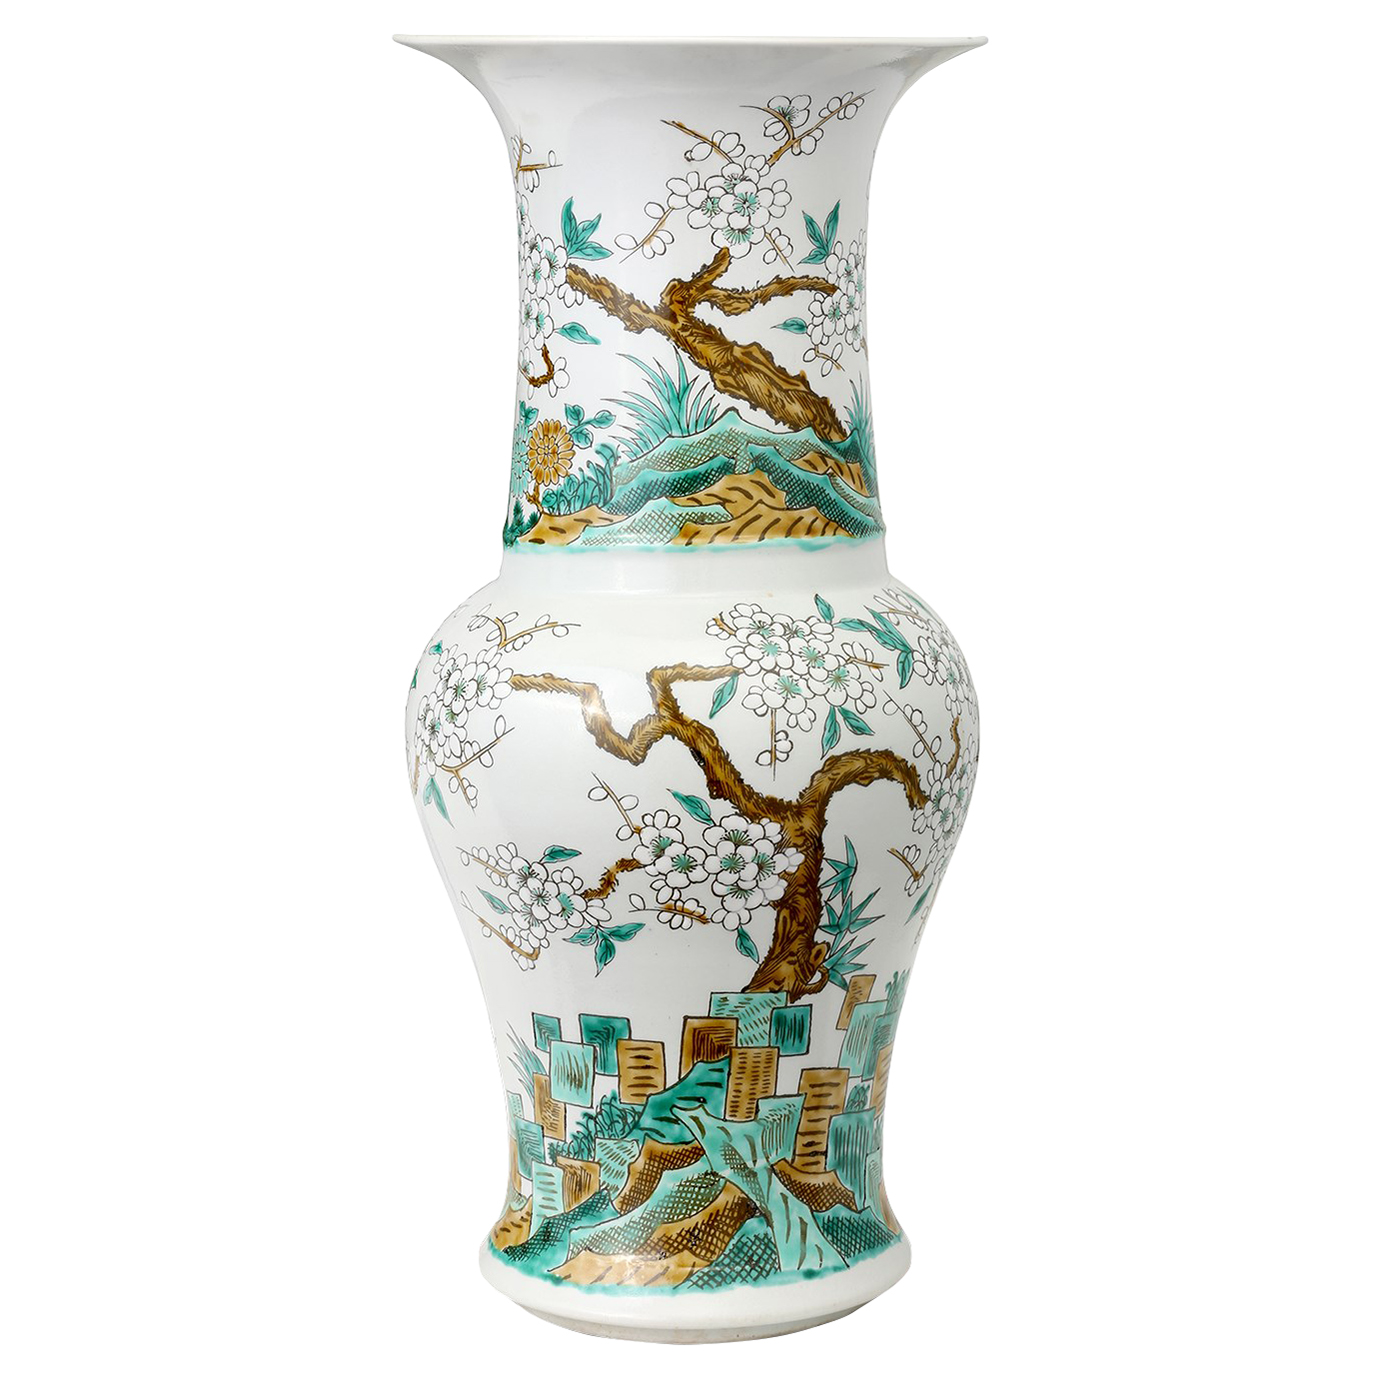 Oka Global Green Cherry Blossom Tall Wide Mouth Porcelain Vase